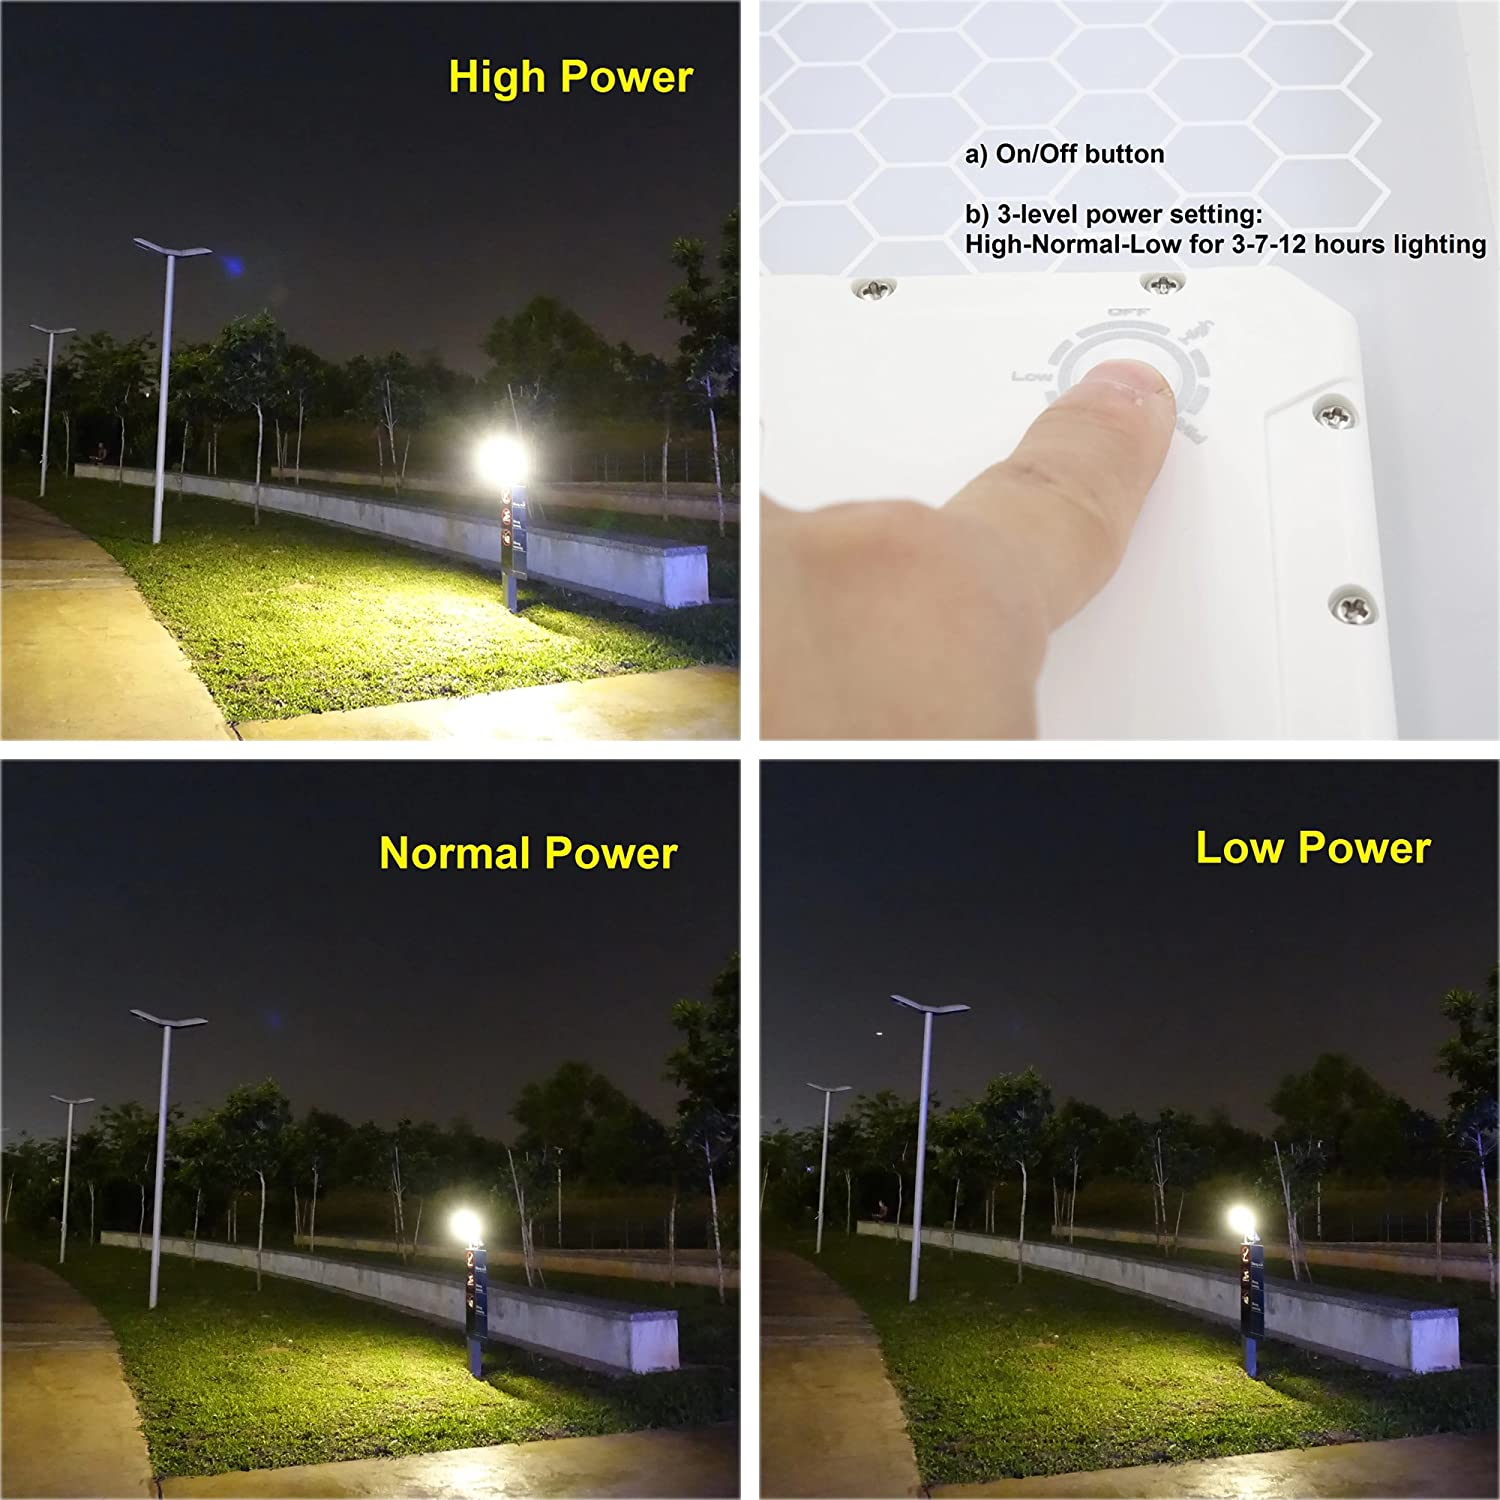 Solar Street Light Hex 780x Warm White Led Running Underground Electrical Wire On Garage Flood Wiring 3 Level Power Setting Fits Max Pole Diameter 25